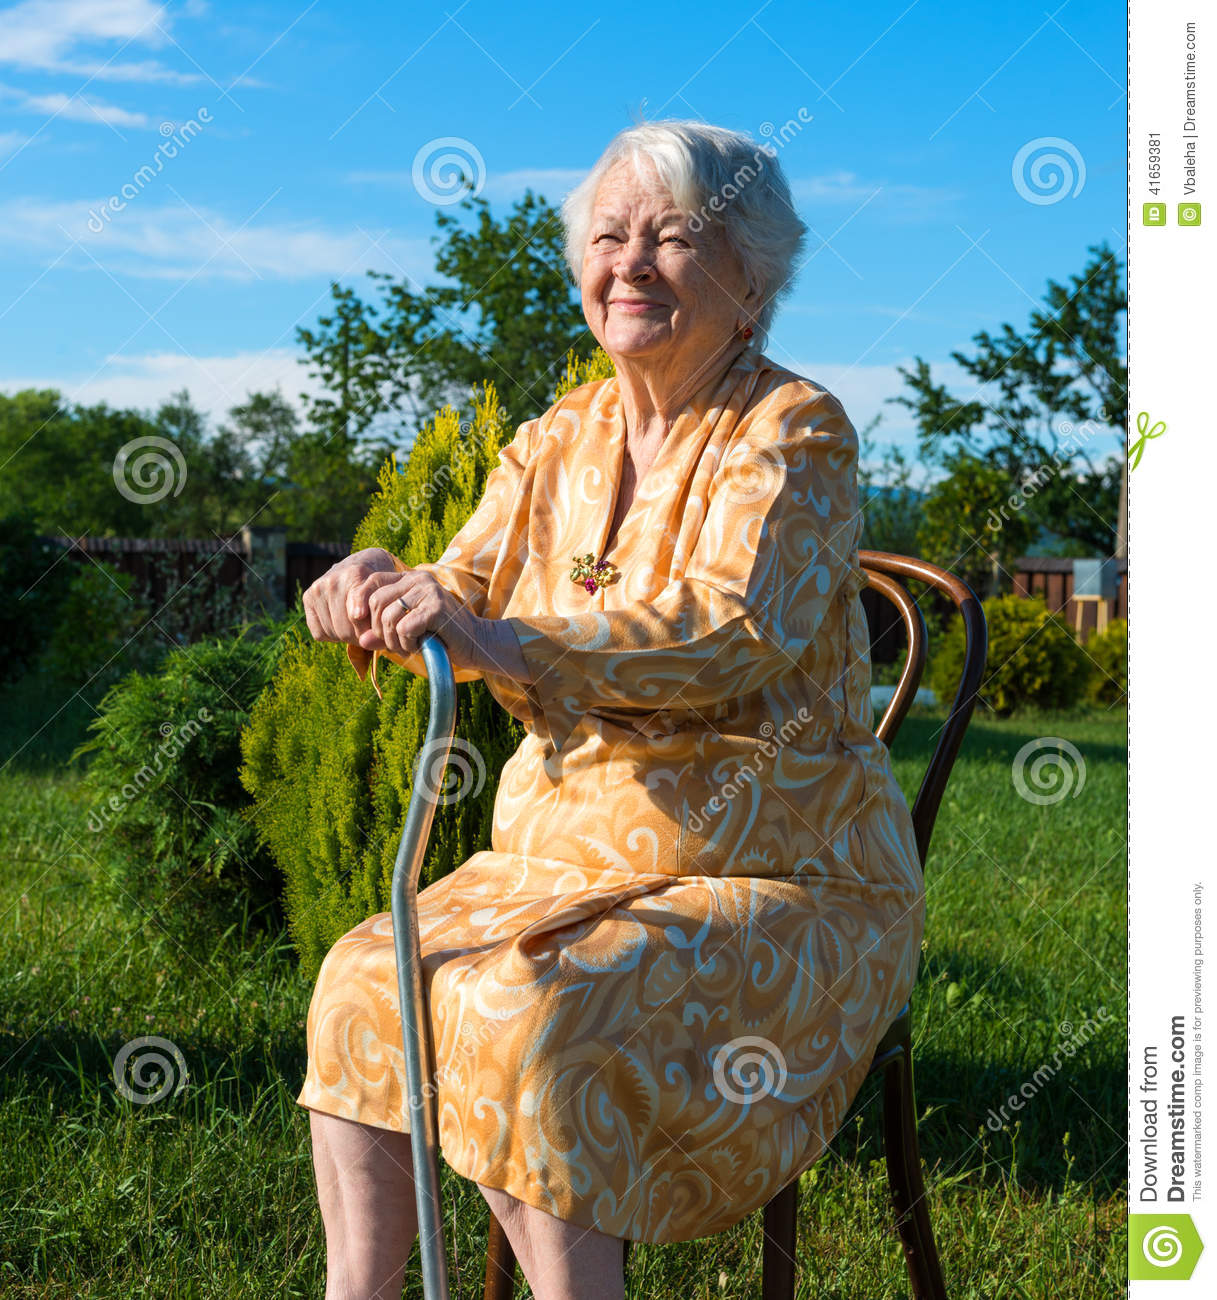 old lady chair very unusual chairs woman sitting on a with cane stock photo